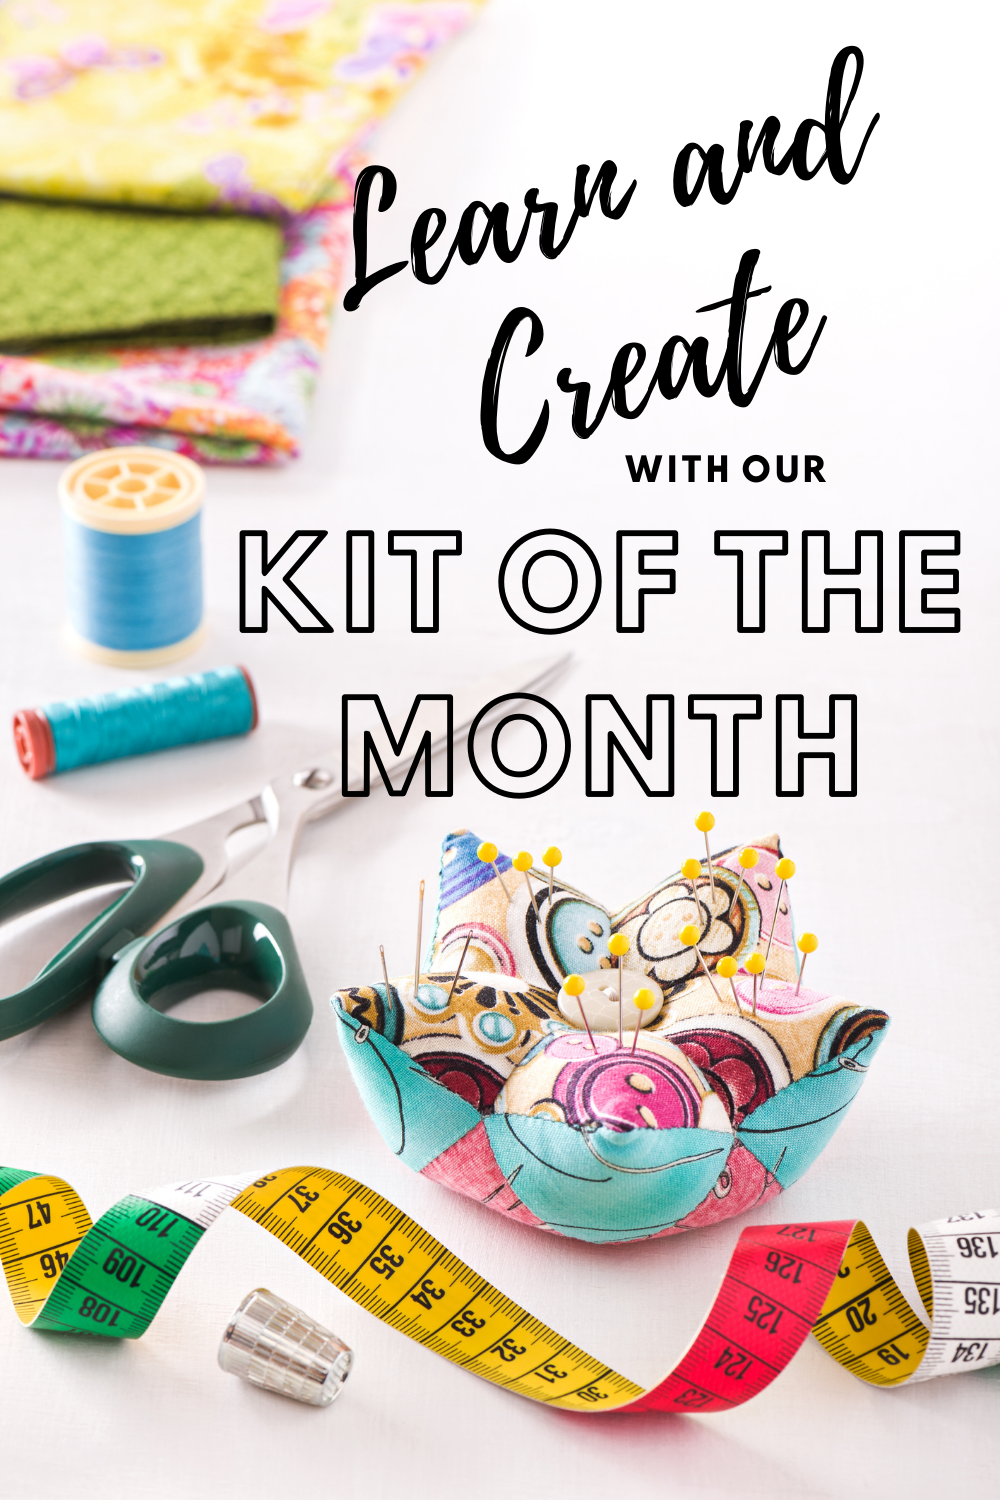 Kit of the Month